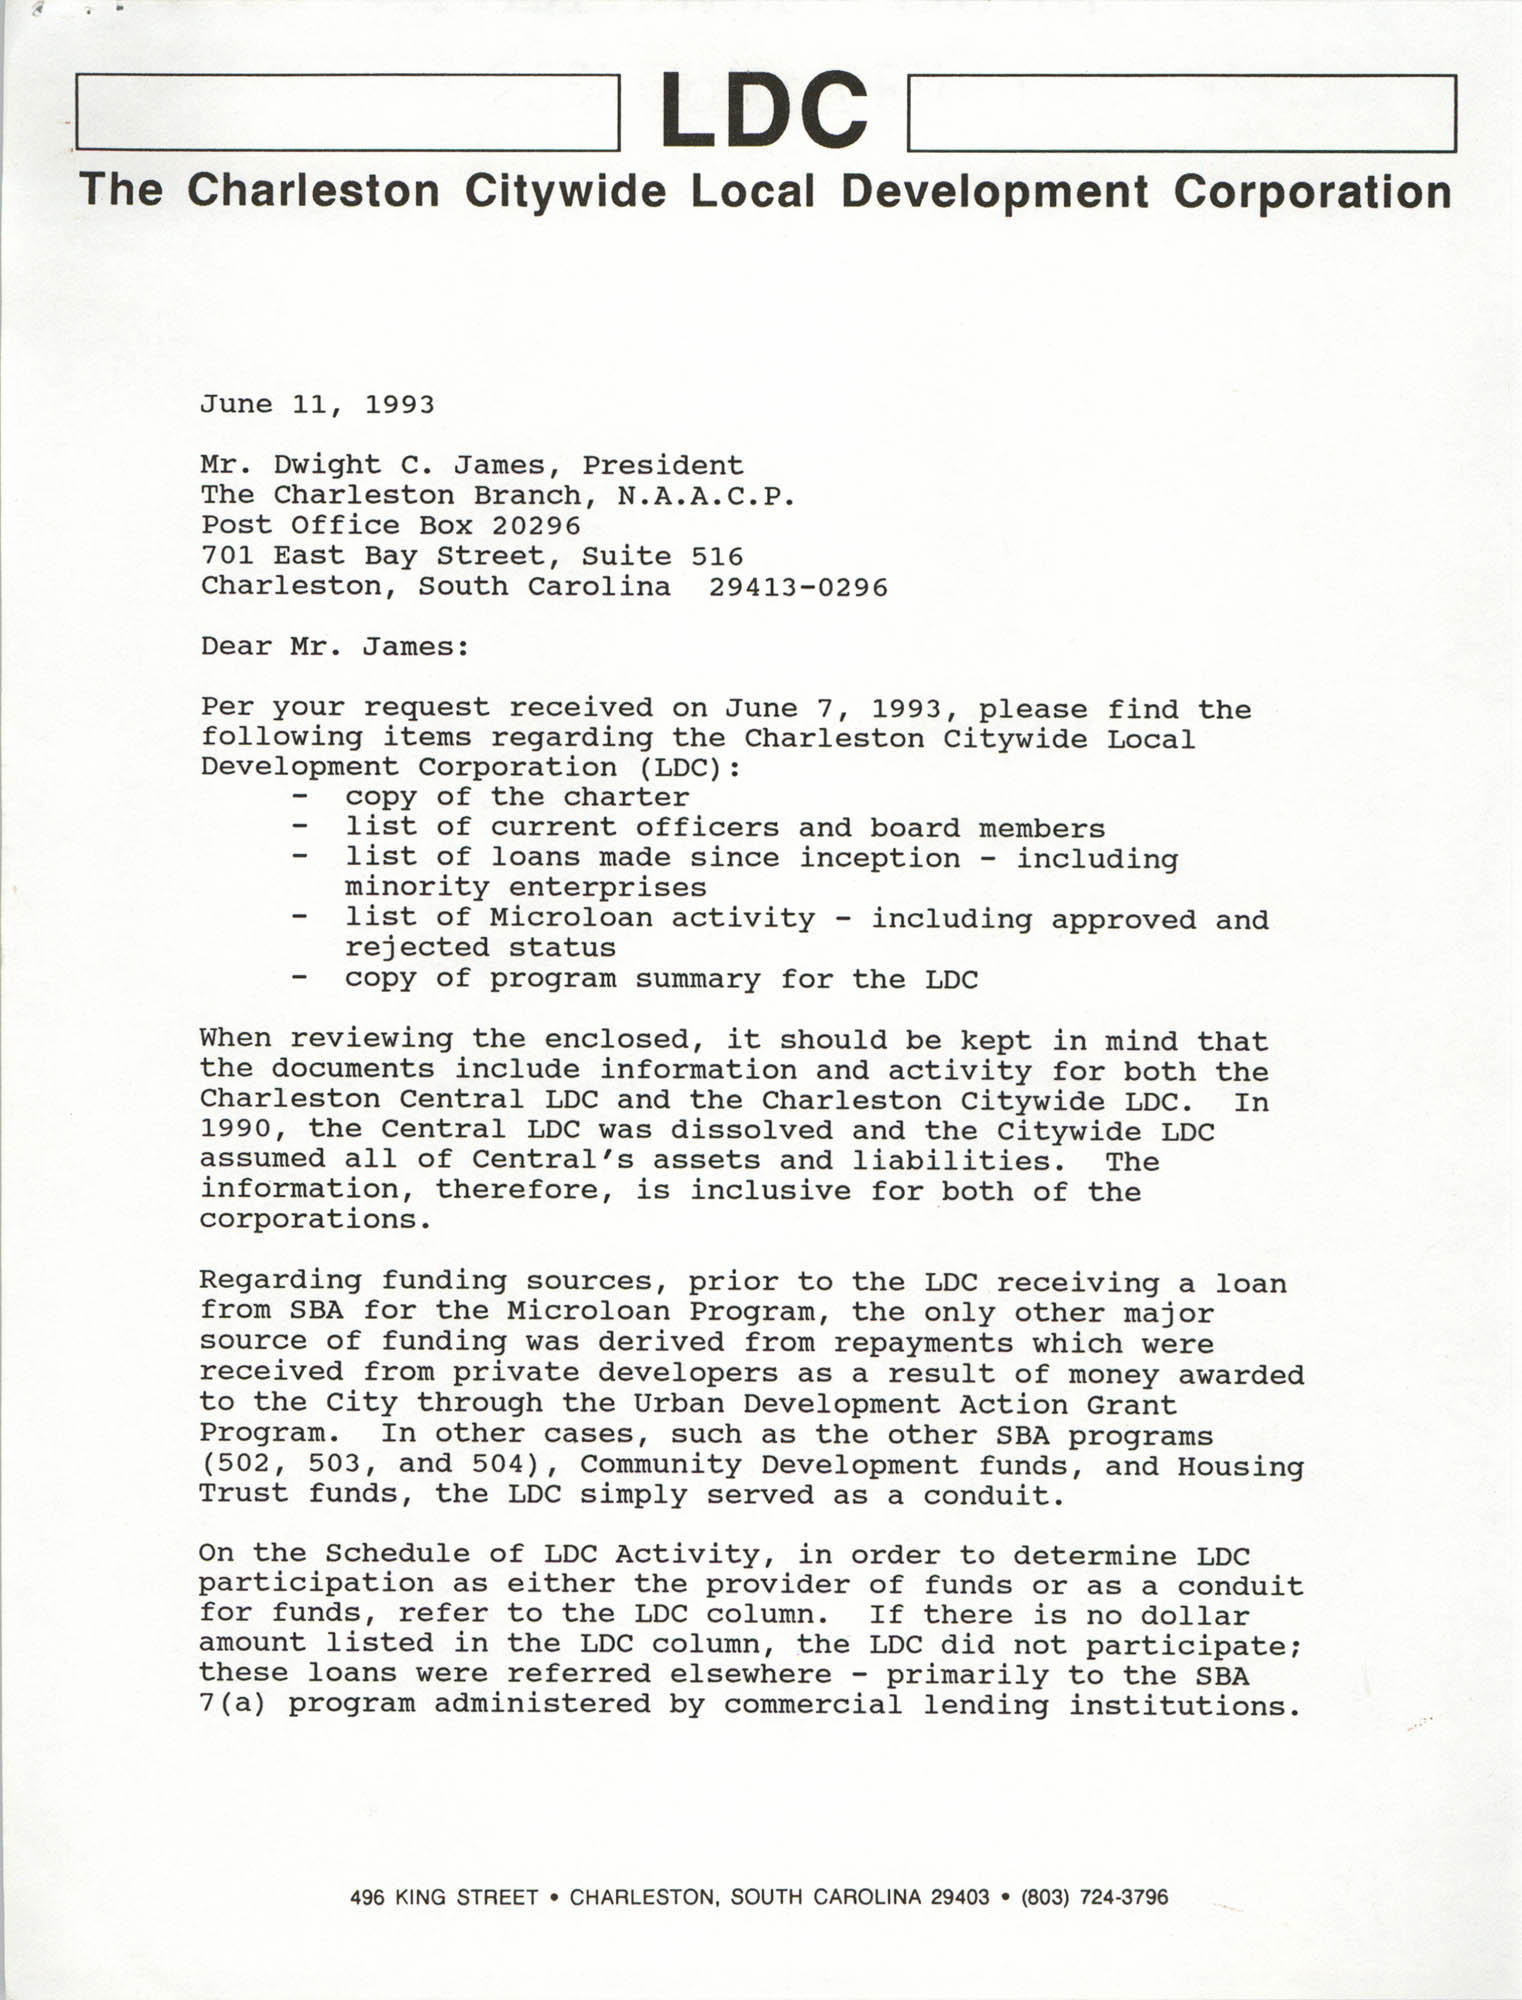 Letter from Sharon A. Brennan to Dwight C. James, June 11, 1993, Page 1